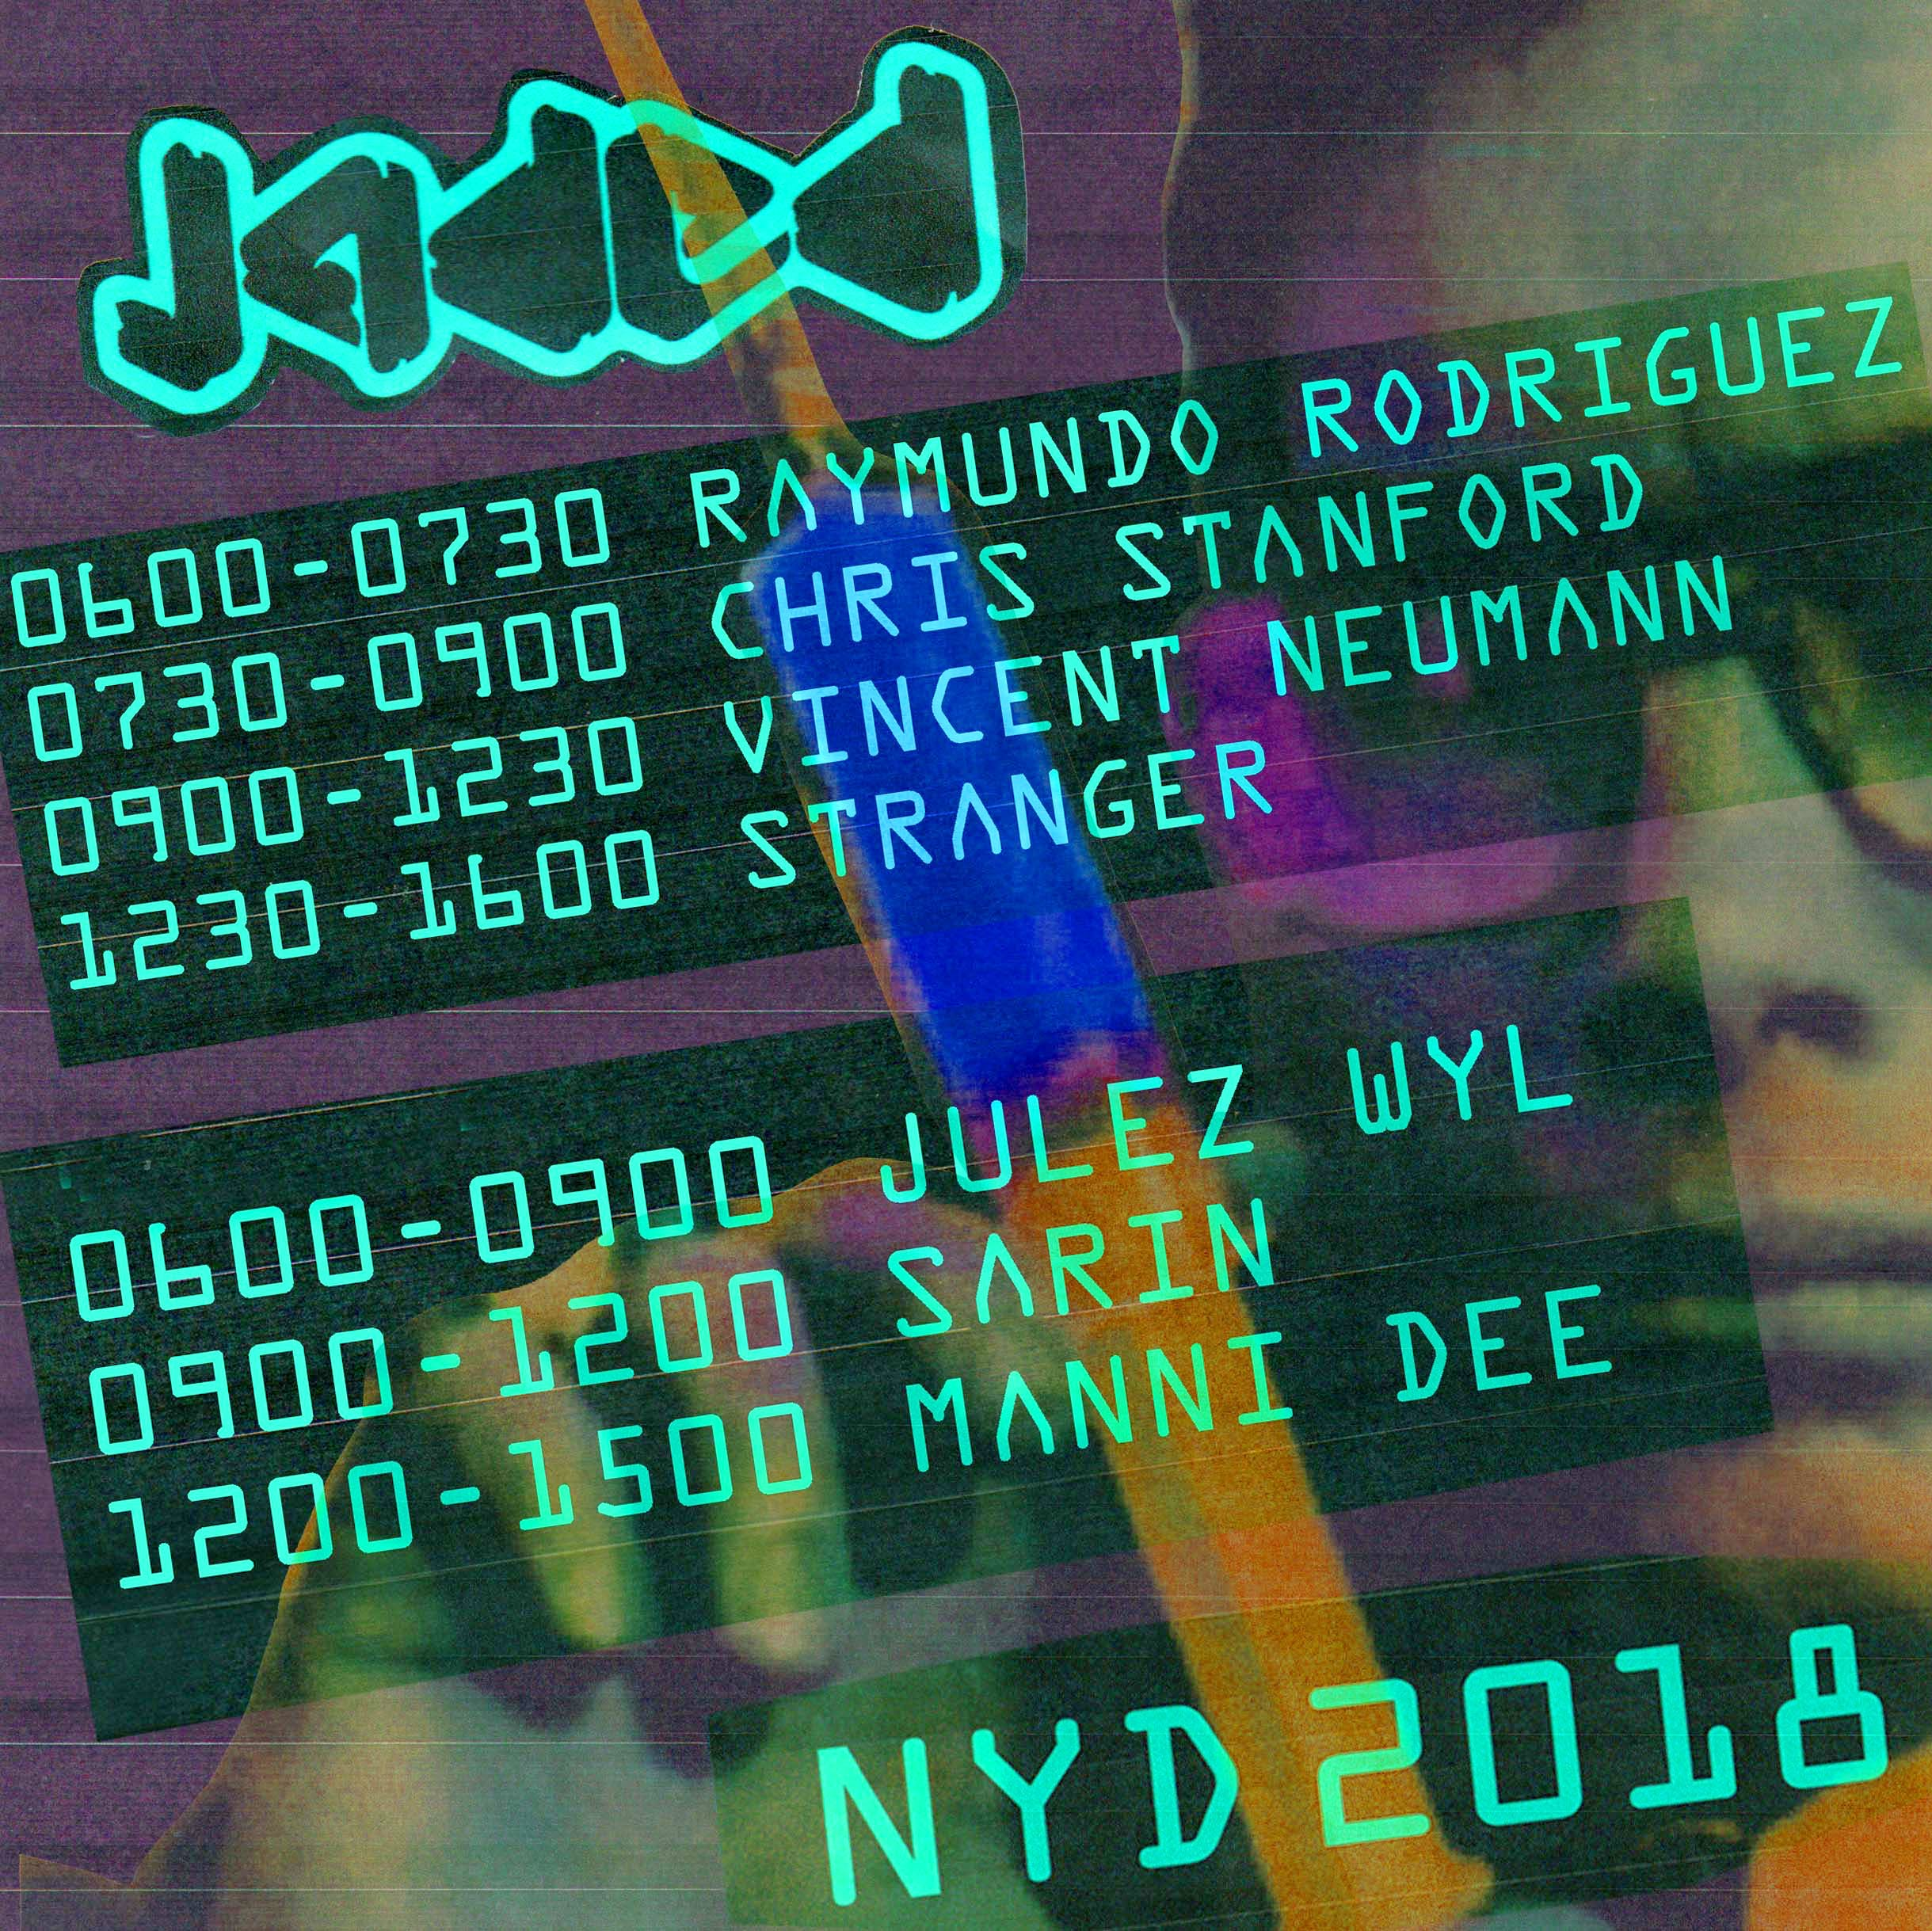 Jaded NYD 2018 Timetable is out.